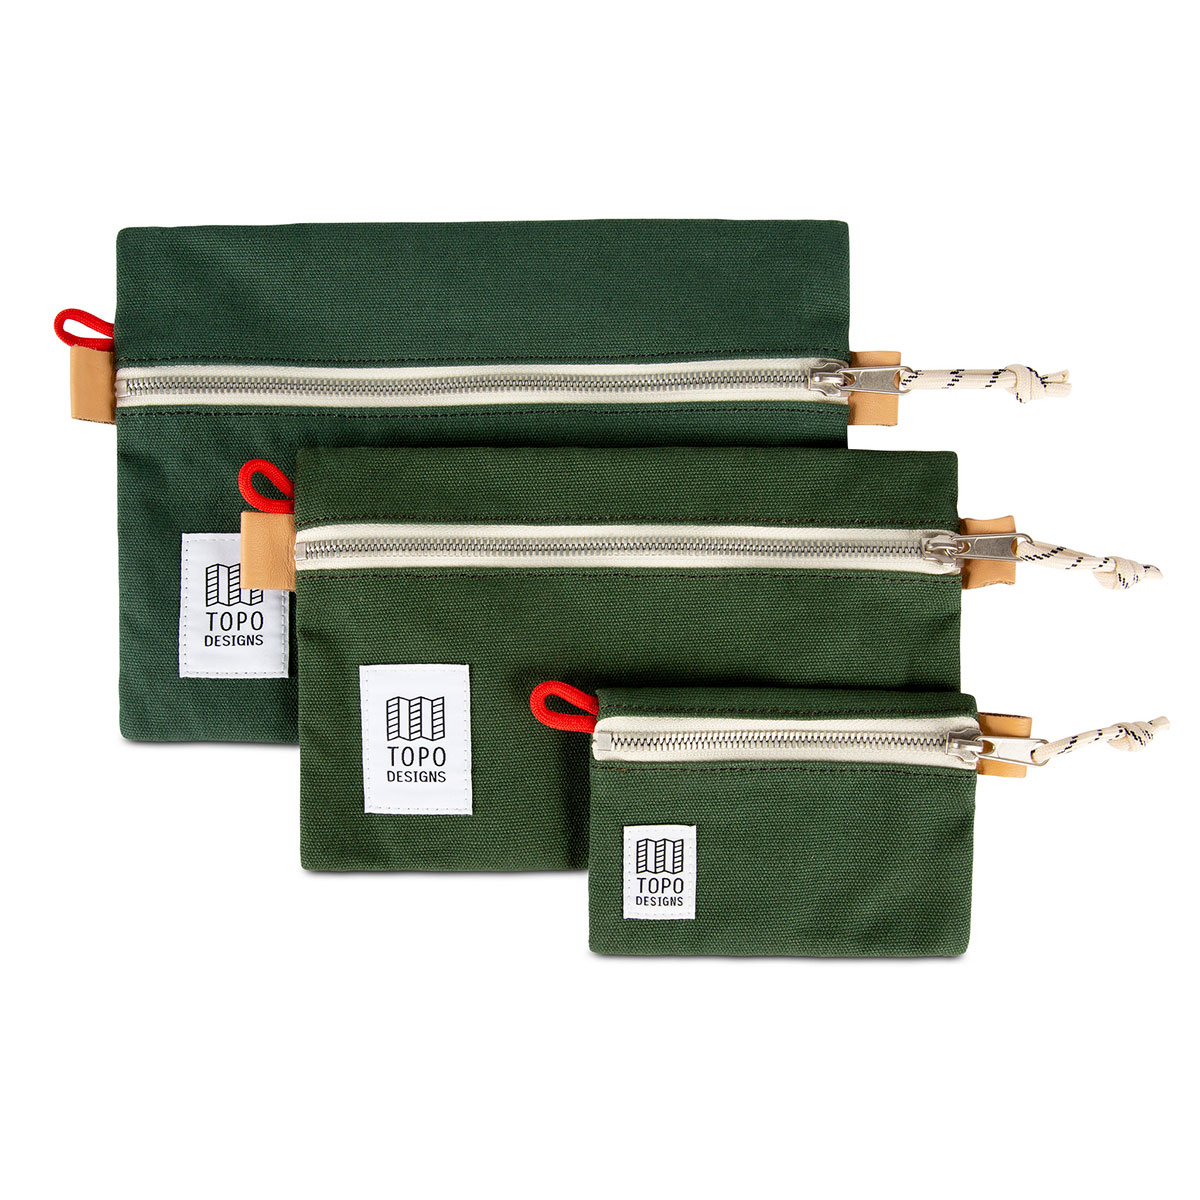 Topo Designs Accessory Bags 3 Pack Canvas Forest